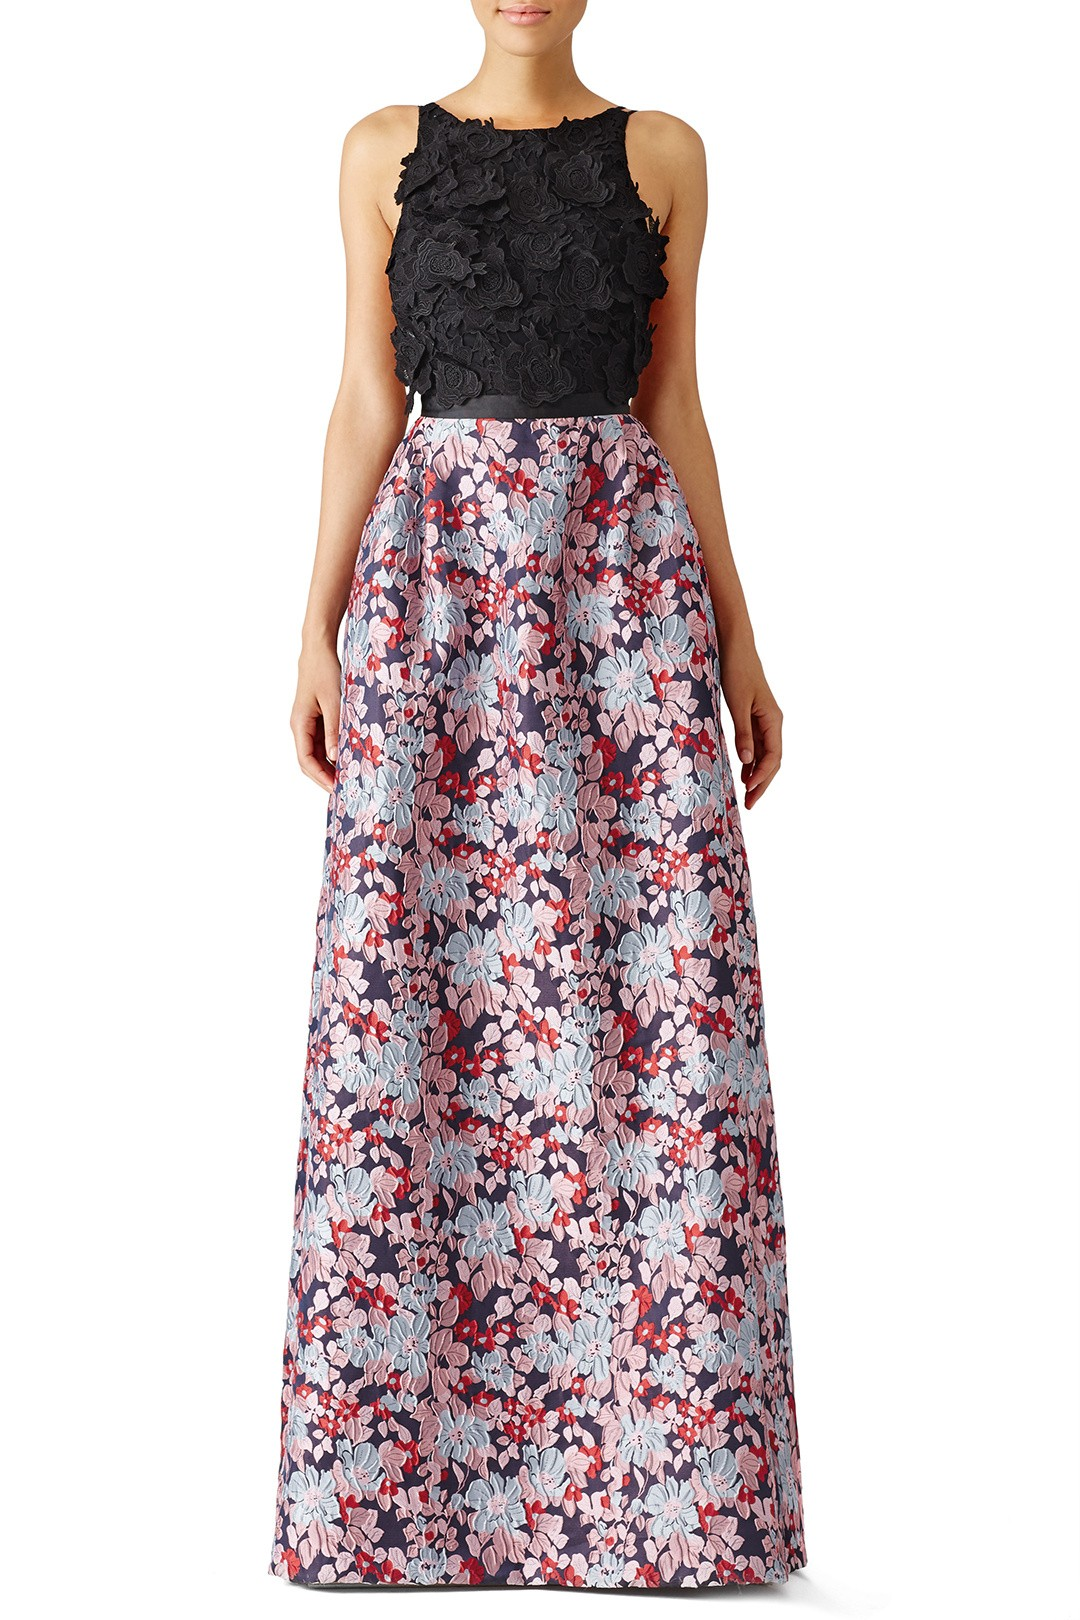 Black tie optional wedding attire long gown for wedding guest rent the runway junglespirit Choice Image